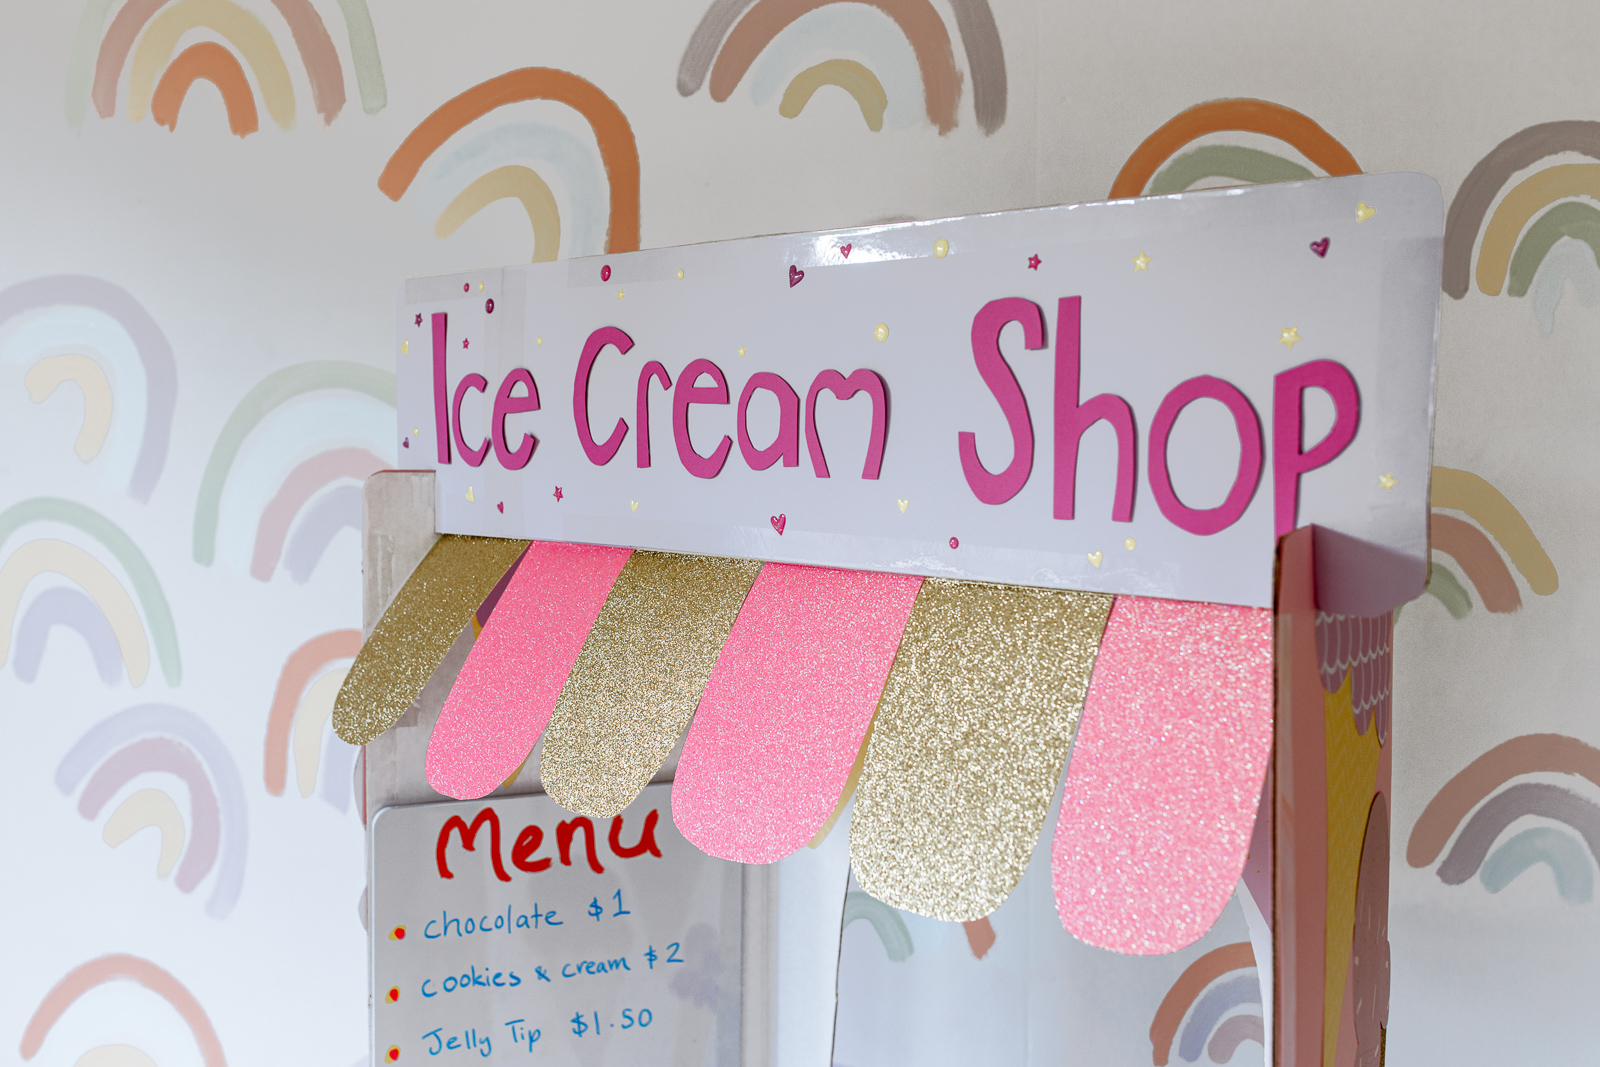 Heading DIY Cardboard Ice Cream Shop by Clever Poppy.jpg